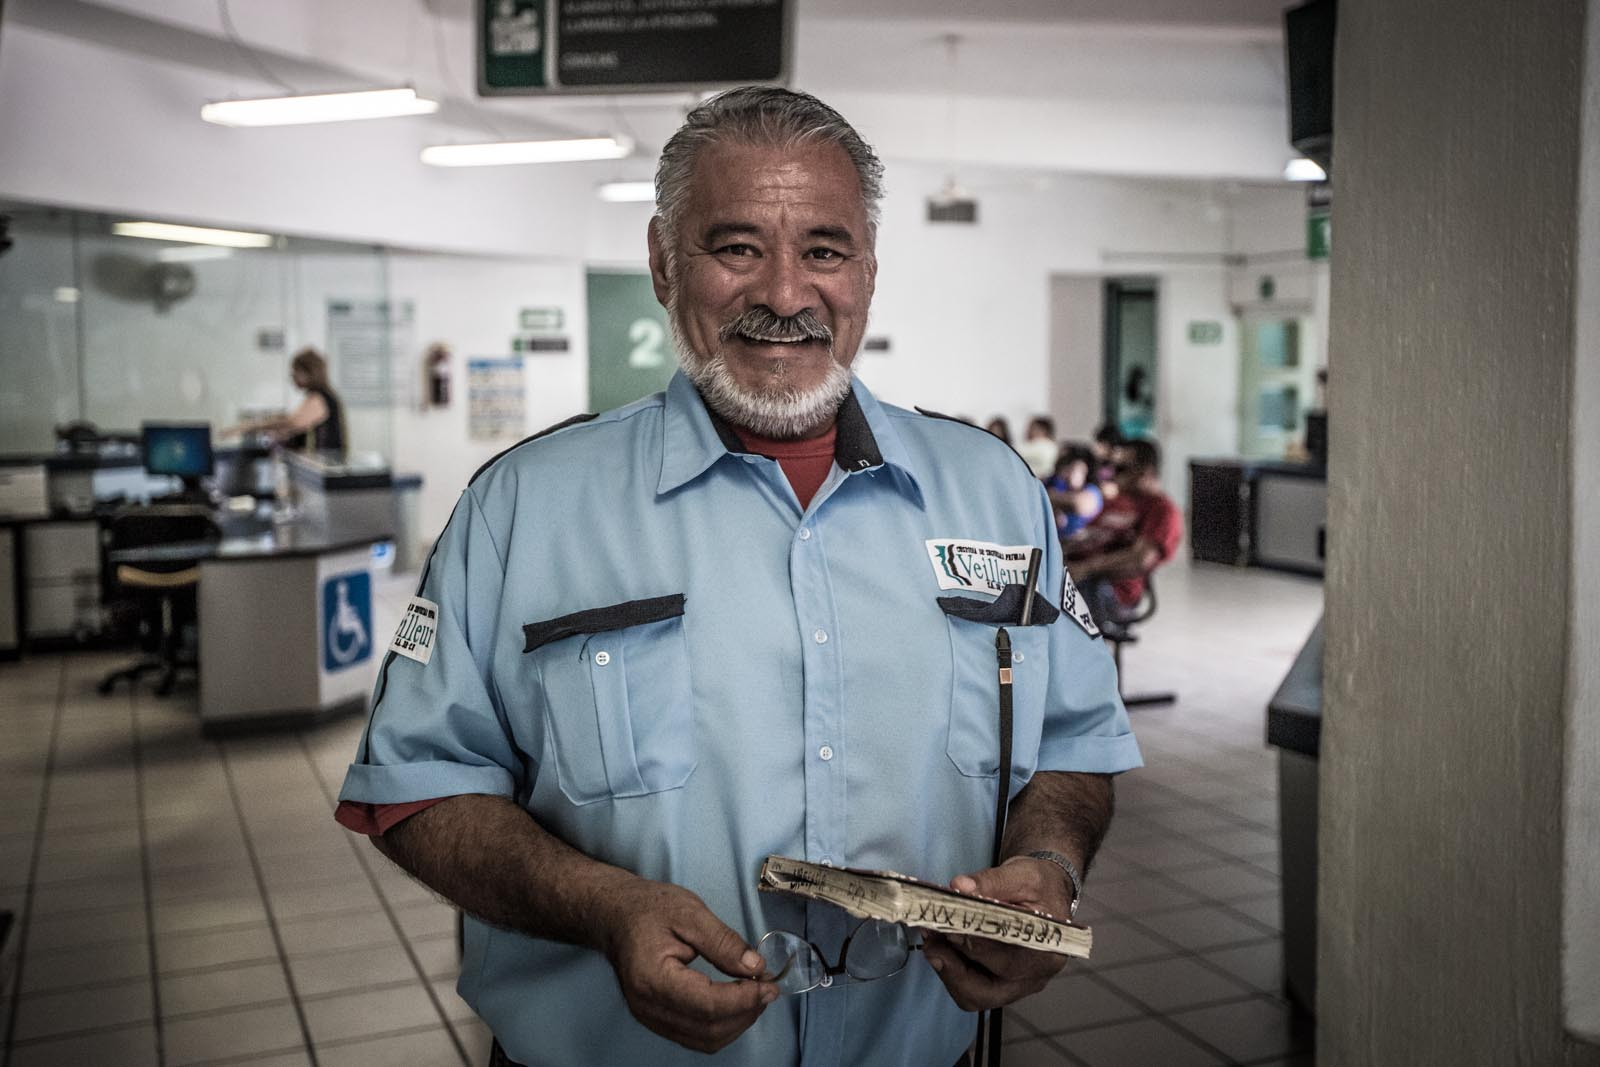 Ferdinando, the friendly security guard that interpreted for us and gave us so many good food recommendations that I was salivating before I received any vaccinations.